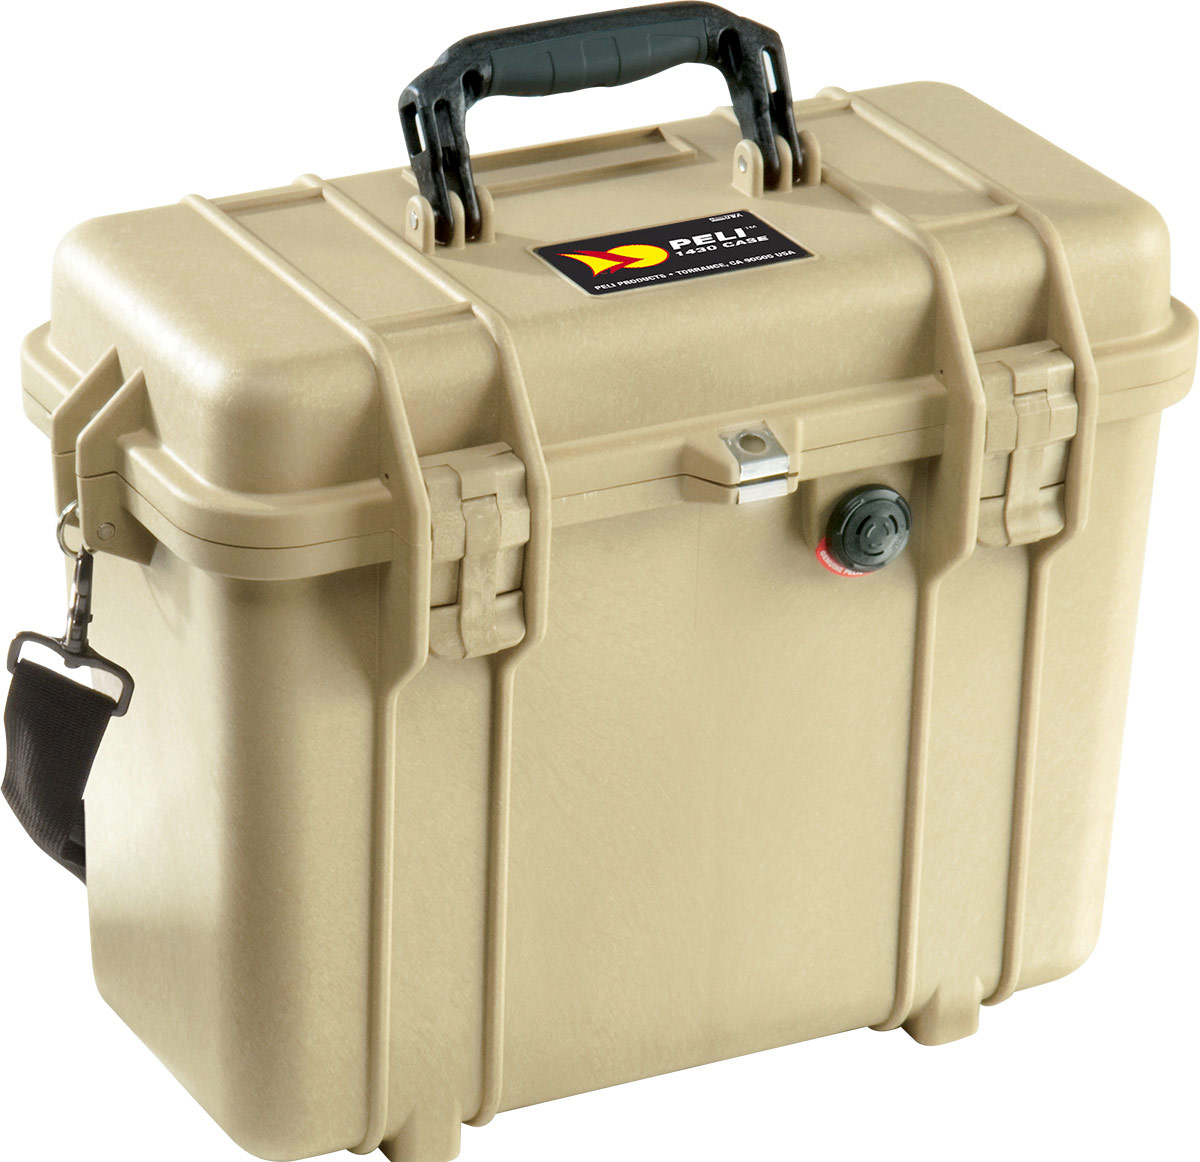 peli 1430 desert tan top loader case